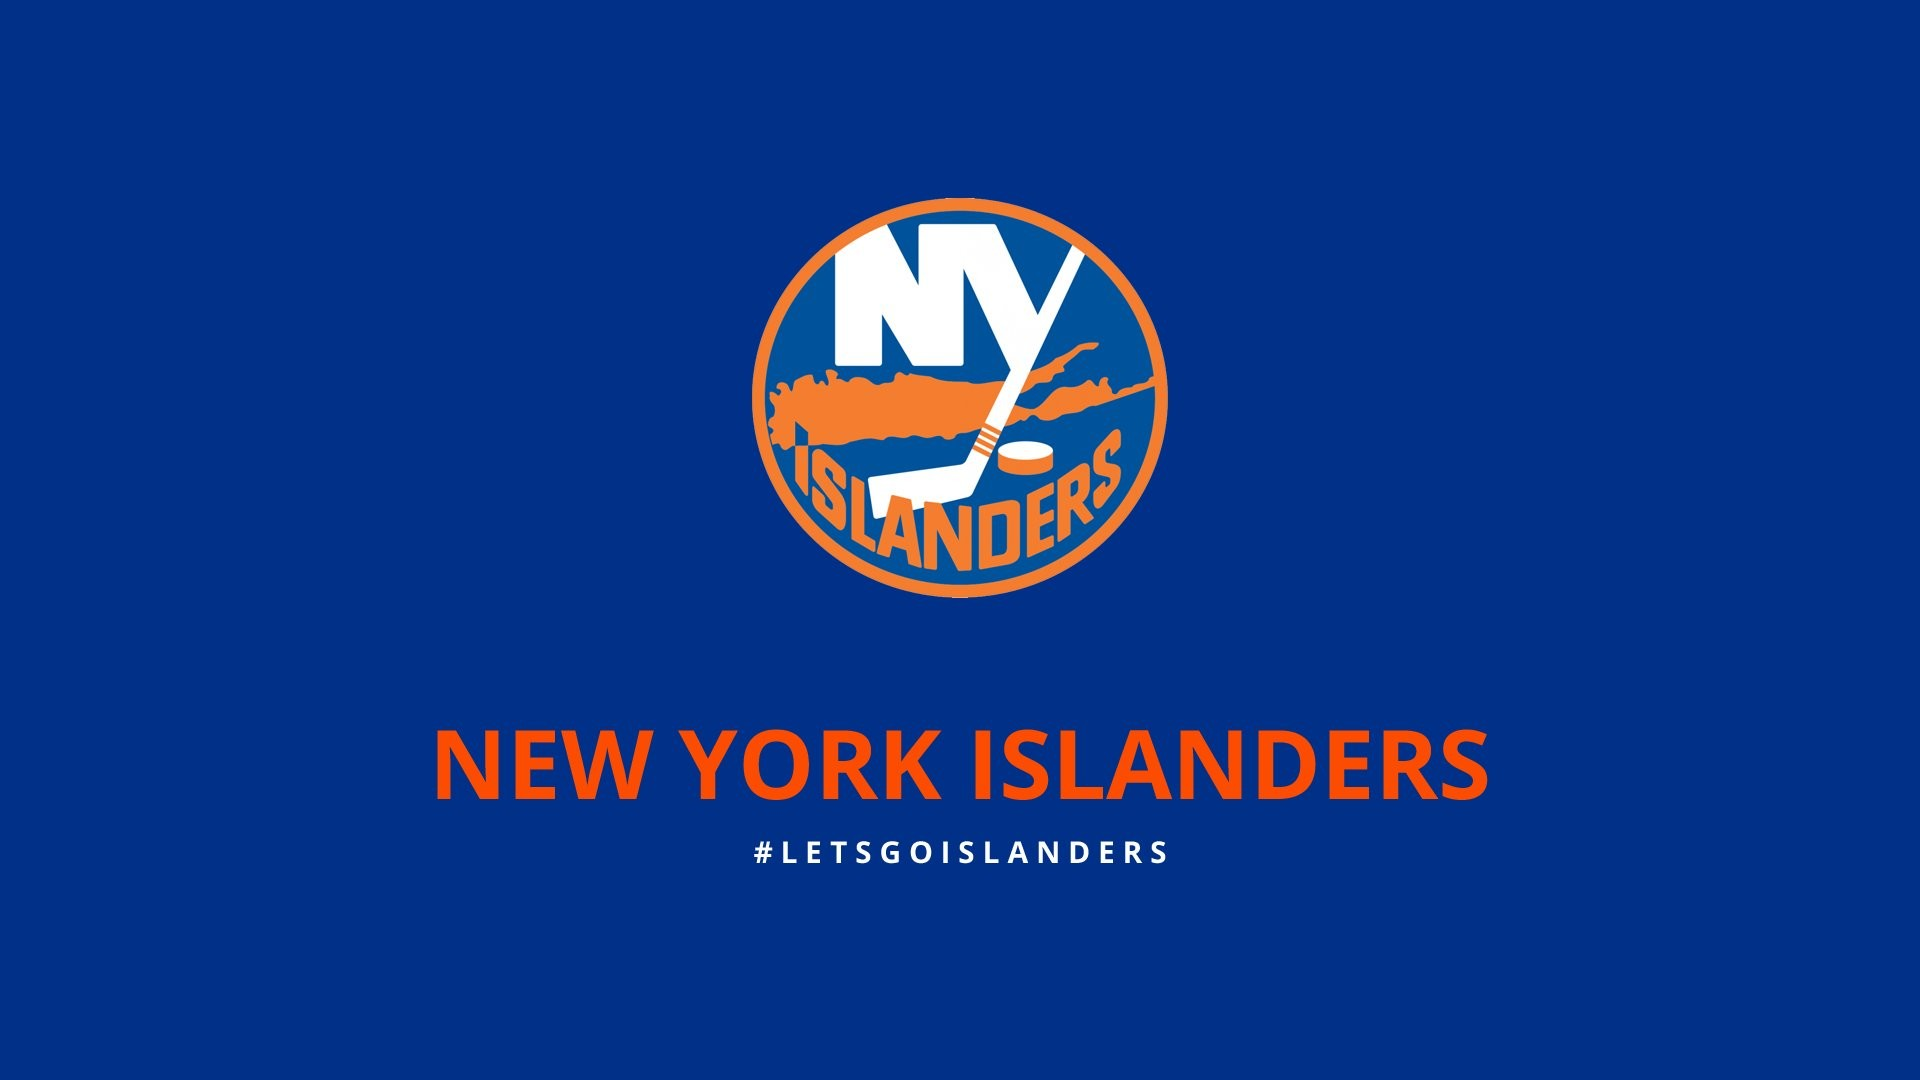 1920x1080 NEW YORK ISLANDERS hockey nhl (3) wallpaper background